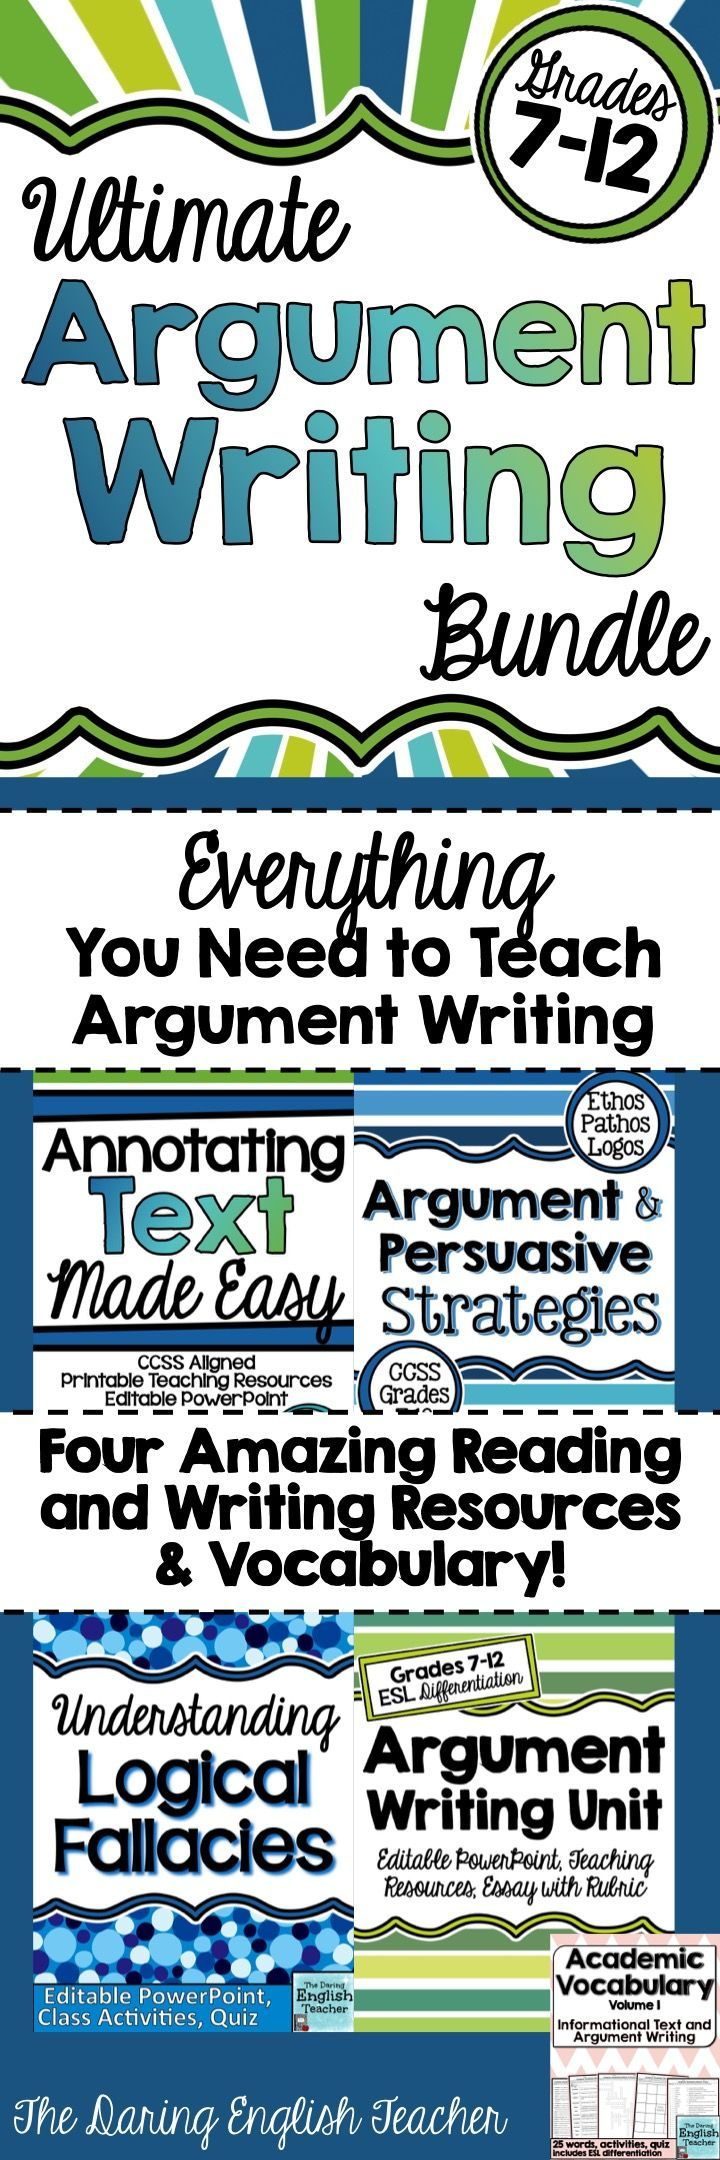 argumentative essay on good teachers The list of great argumentative essay topics approved by the teachers from the top colleges & universities of the uk and the us is presented below argumentative essay topics for high school modern television & media impinge the student's intellect.